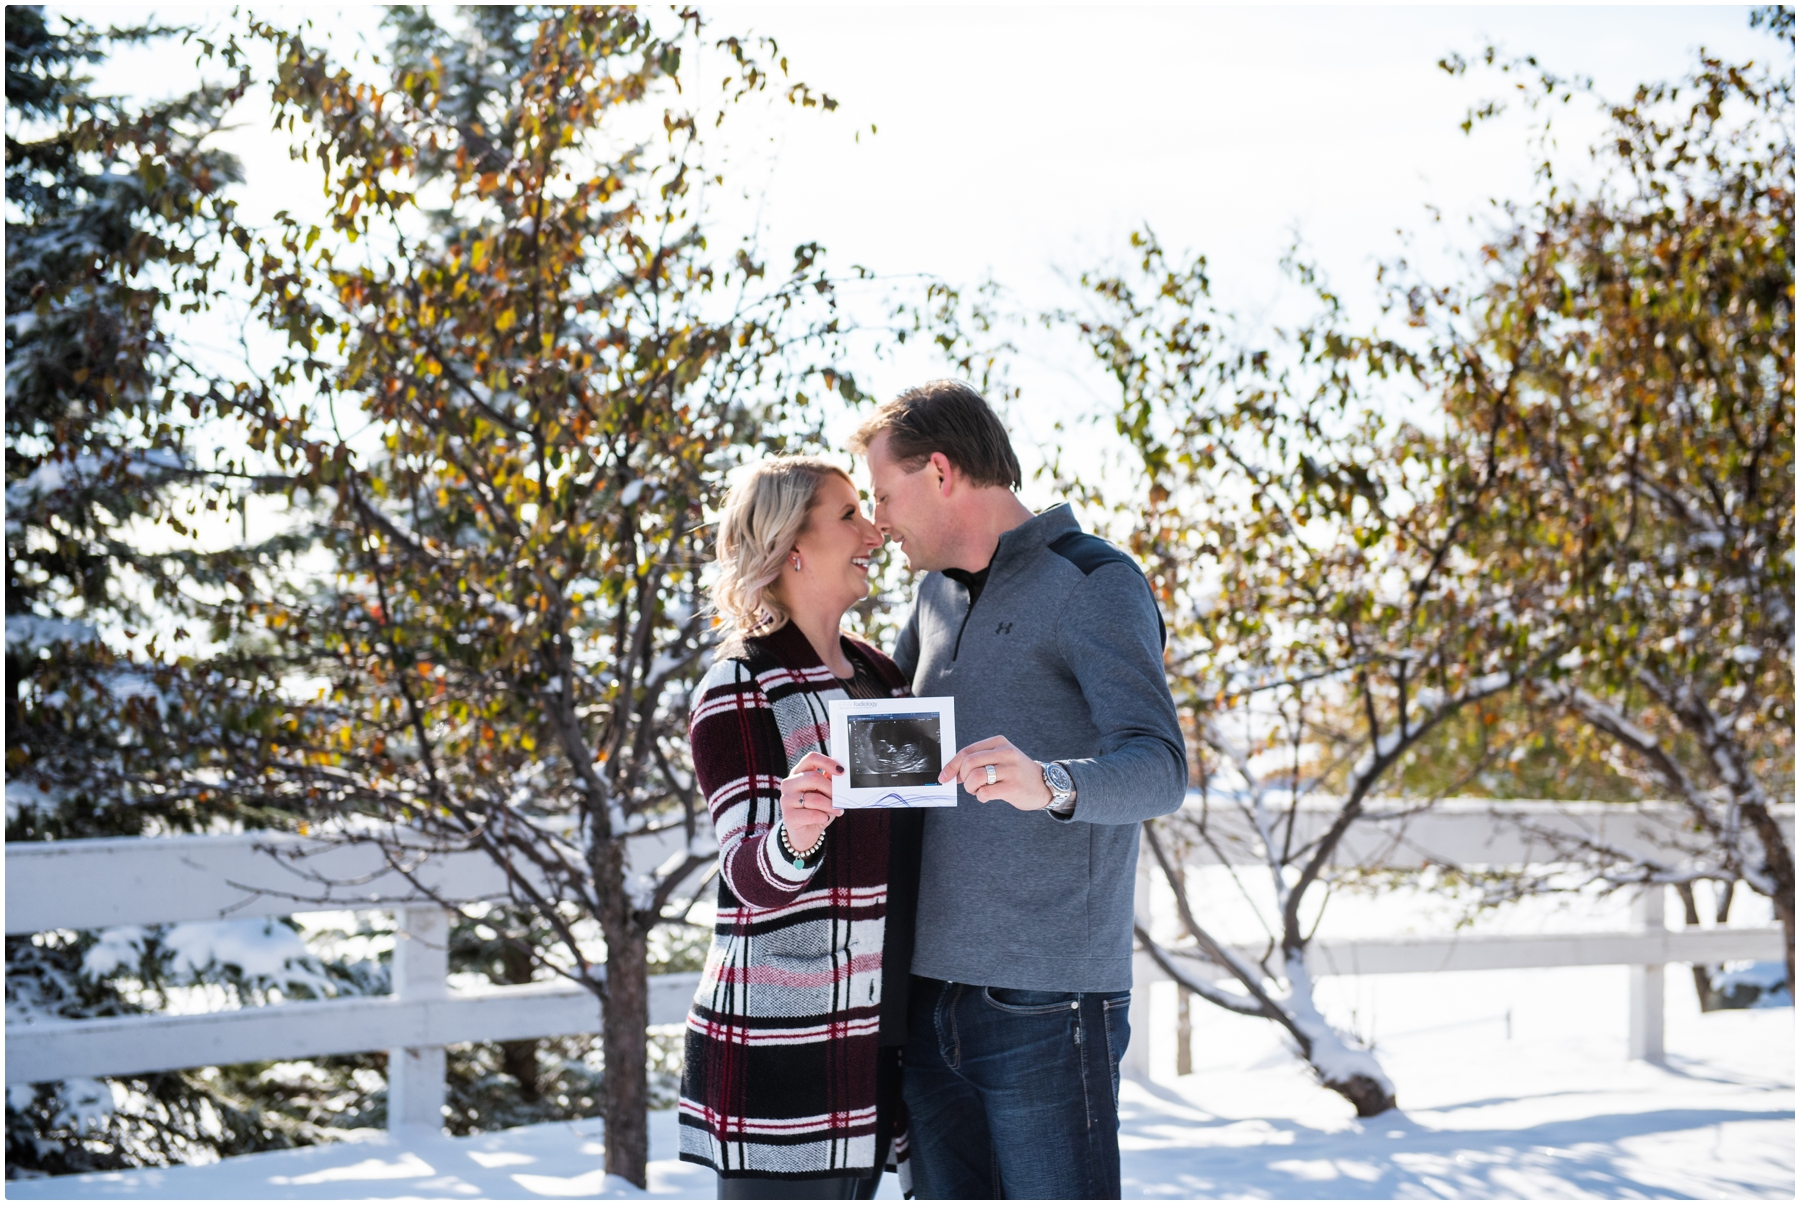 Calgary Pregnancy Announcement Photographers